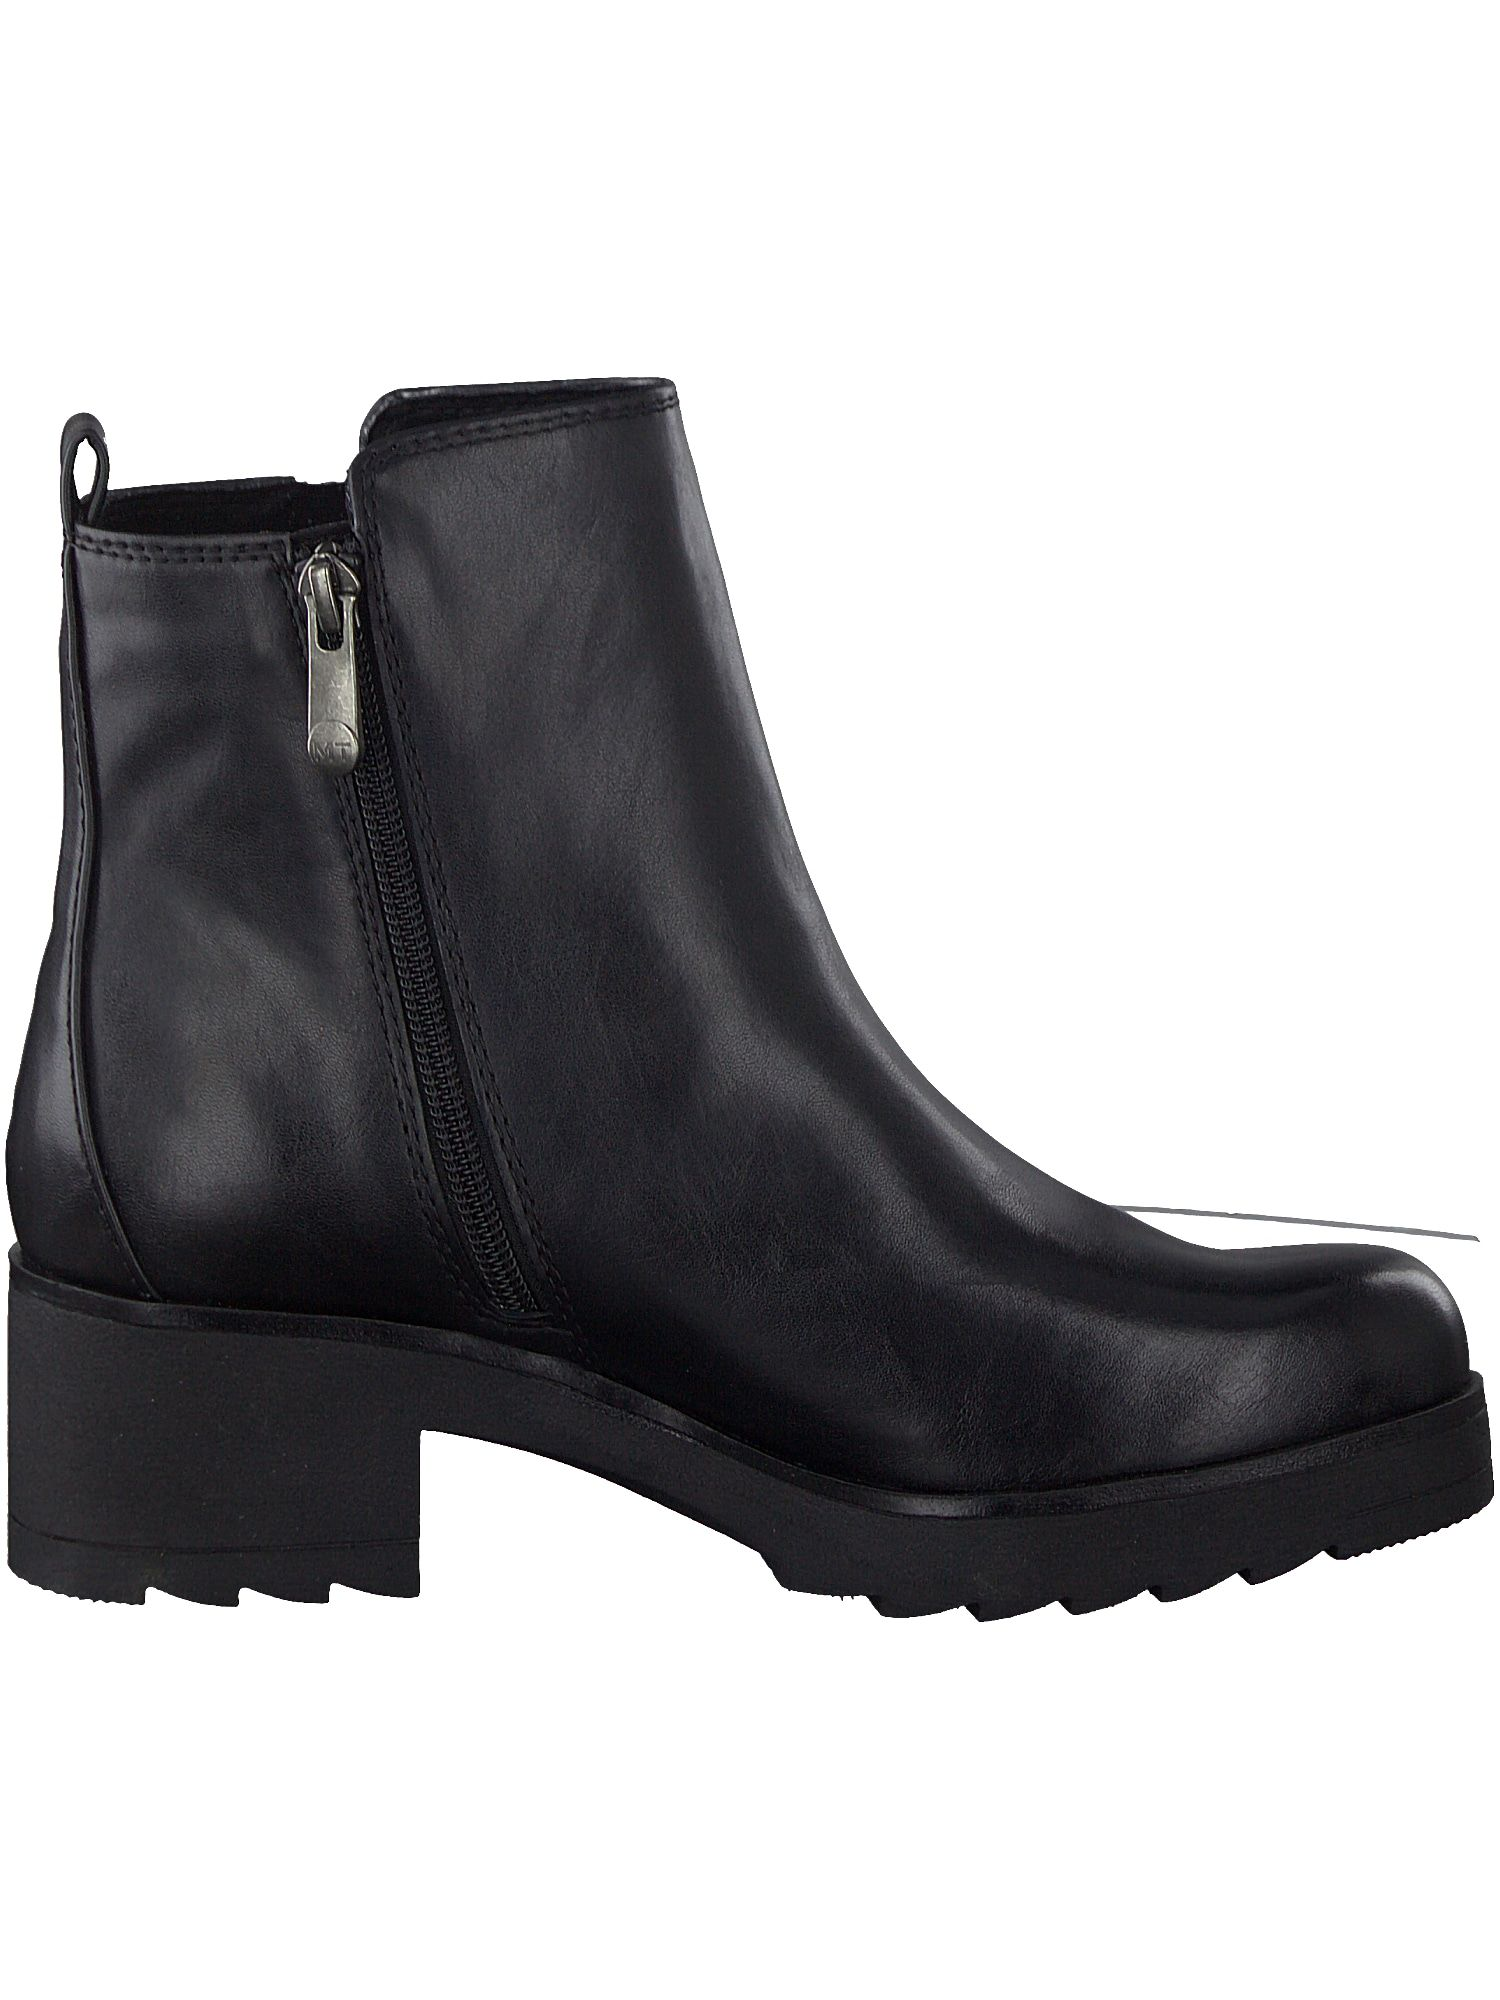 MARCO TOZZI Stiefel in schwarz | ABOUT YOU